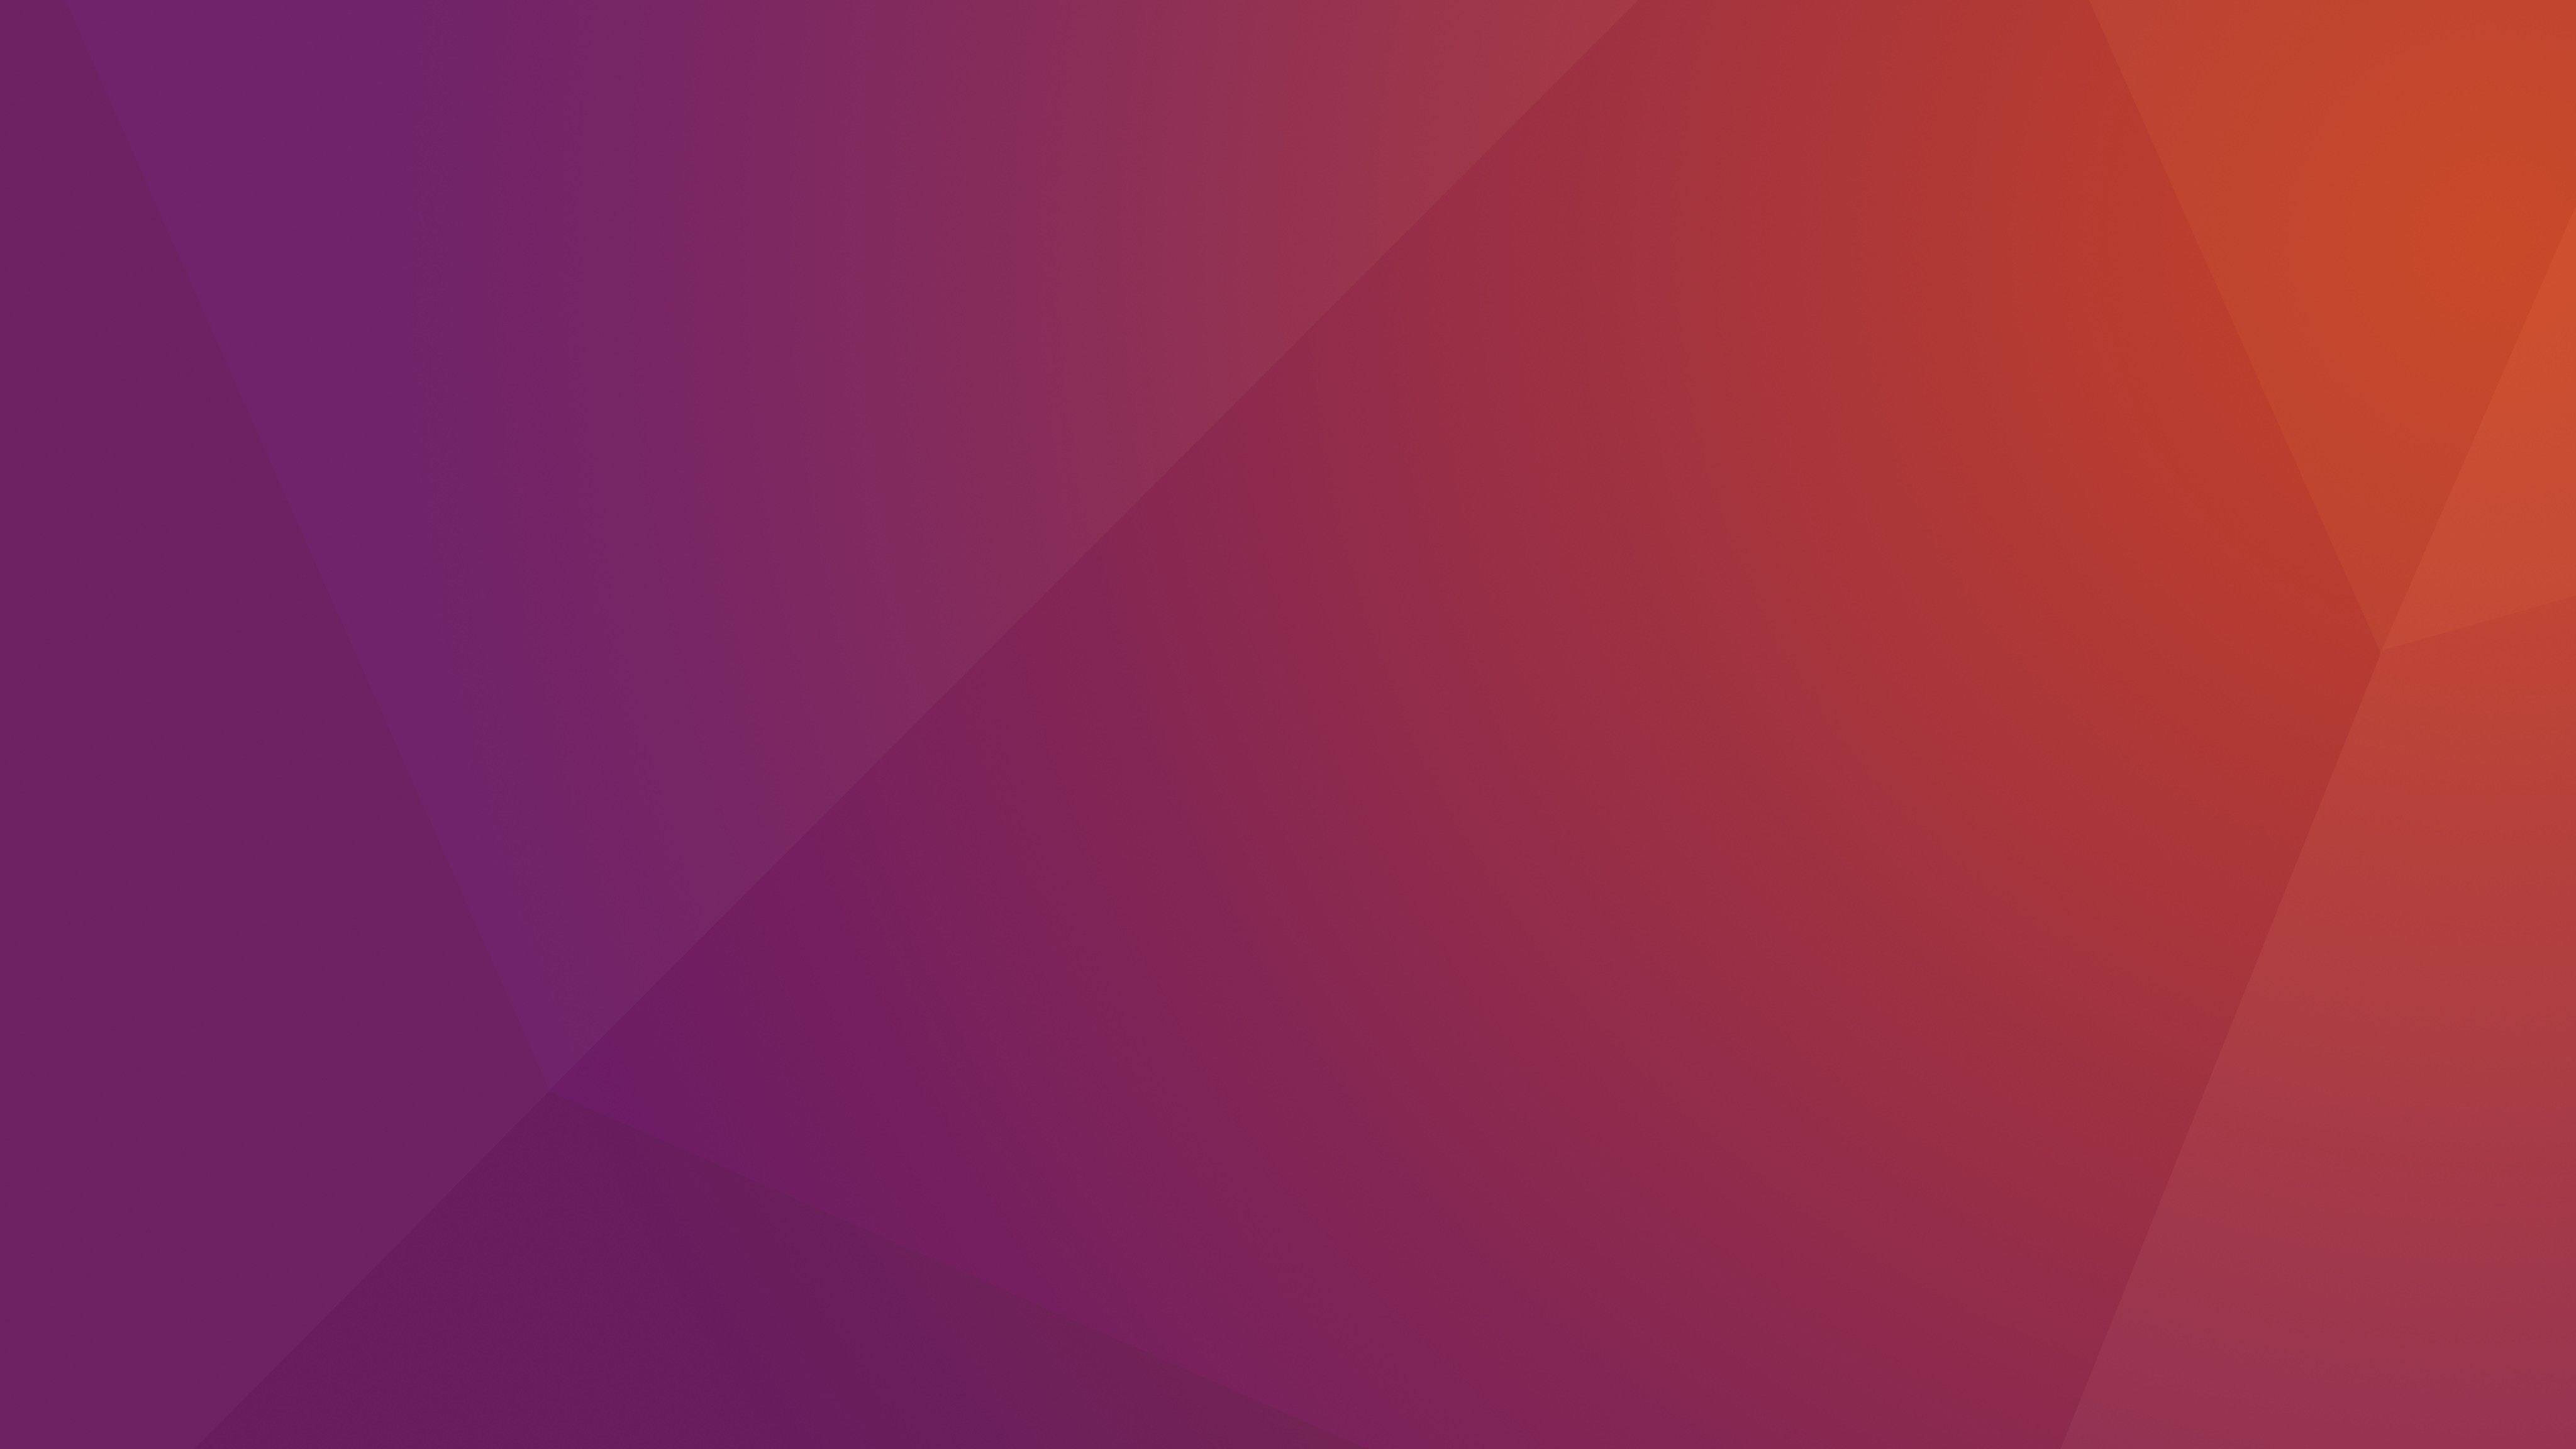 Ubuntu 1604 LTS Wallpapers Revealed for Desktop and Phone 4096x2304